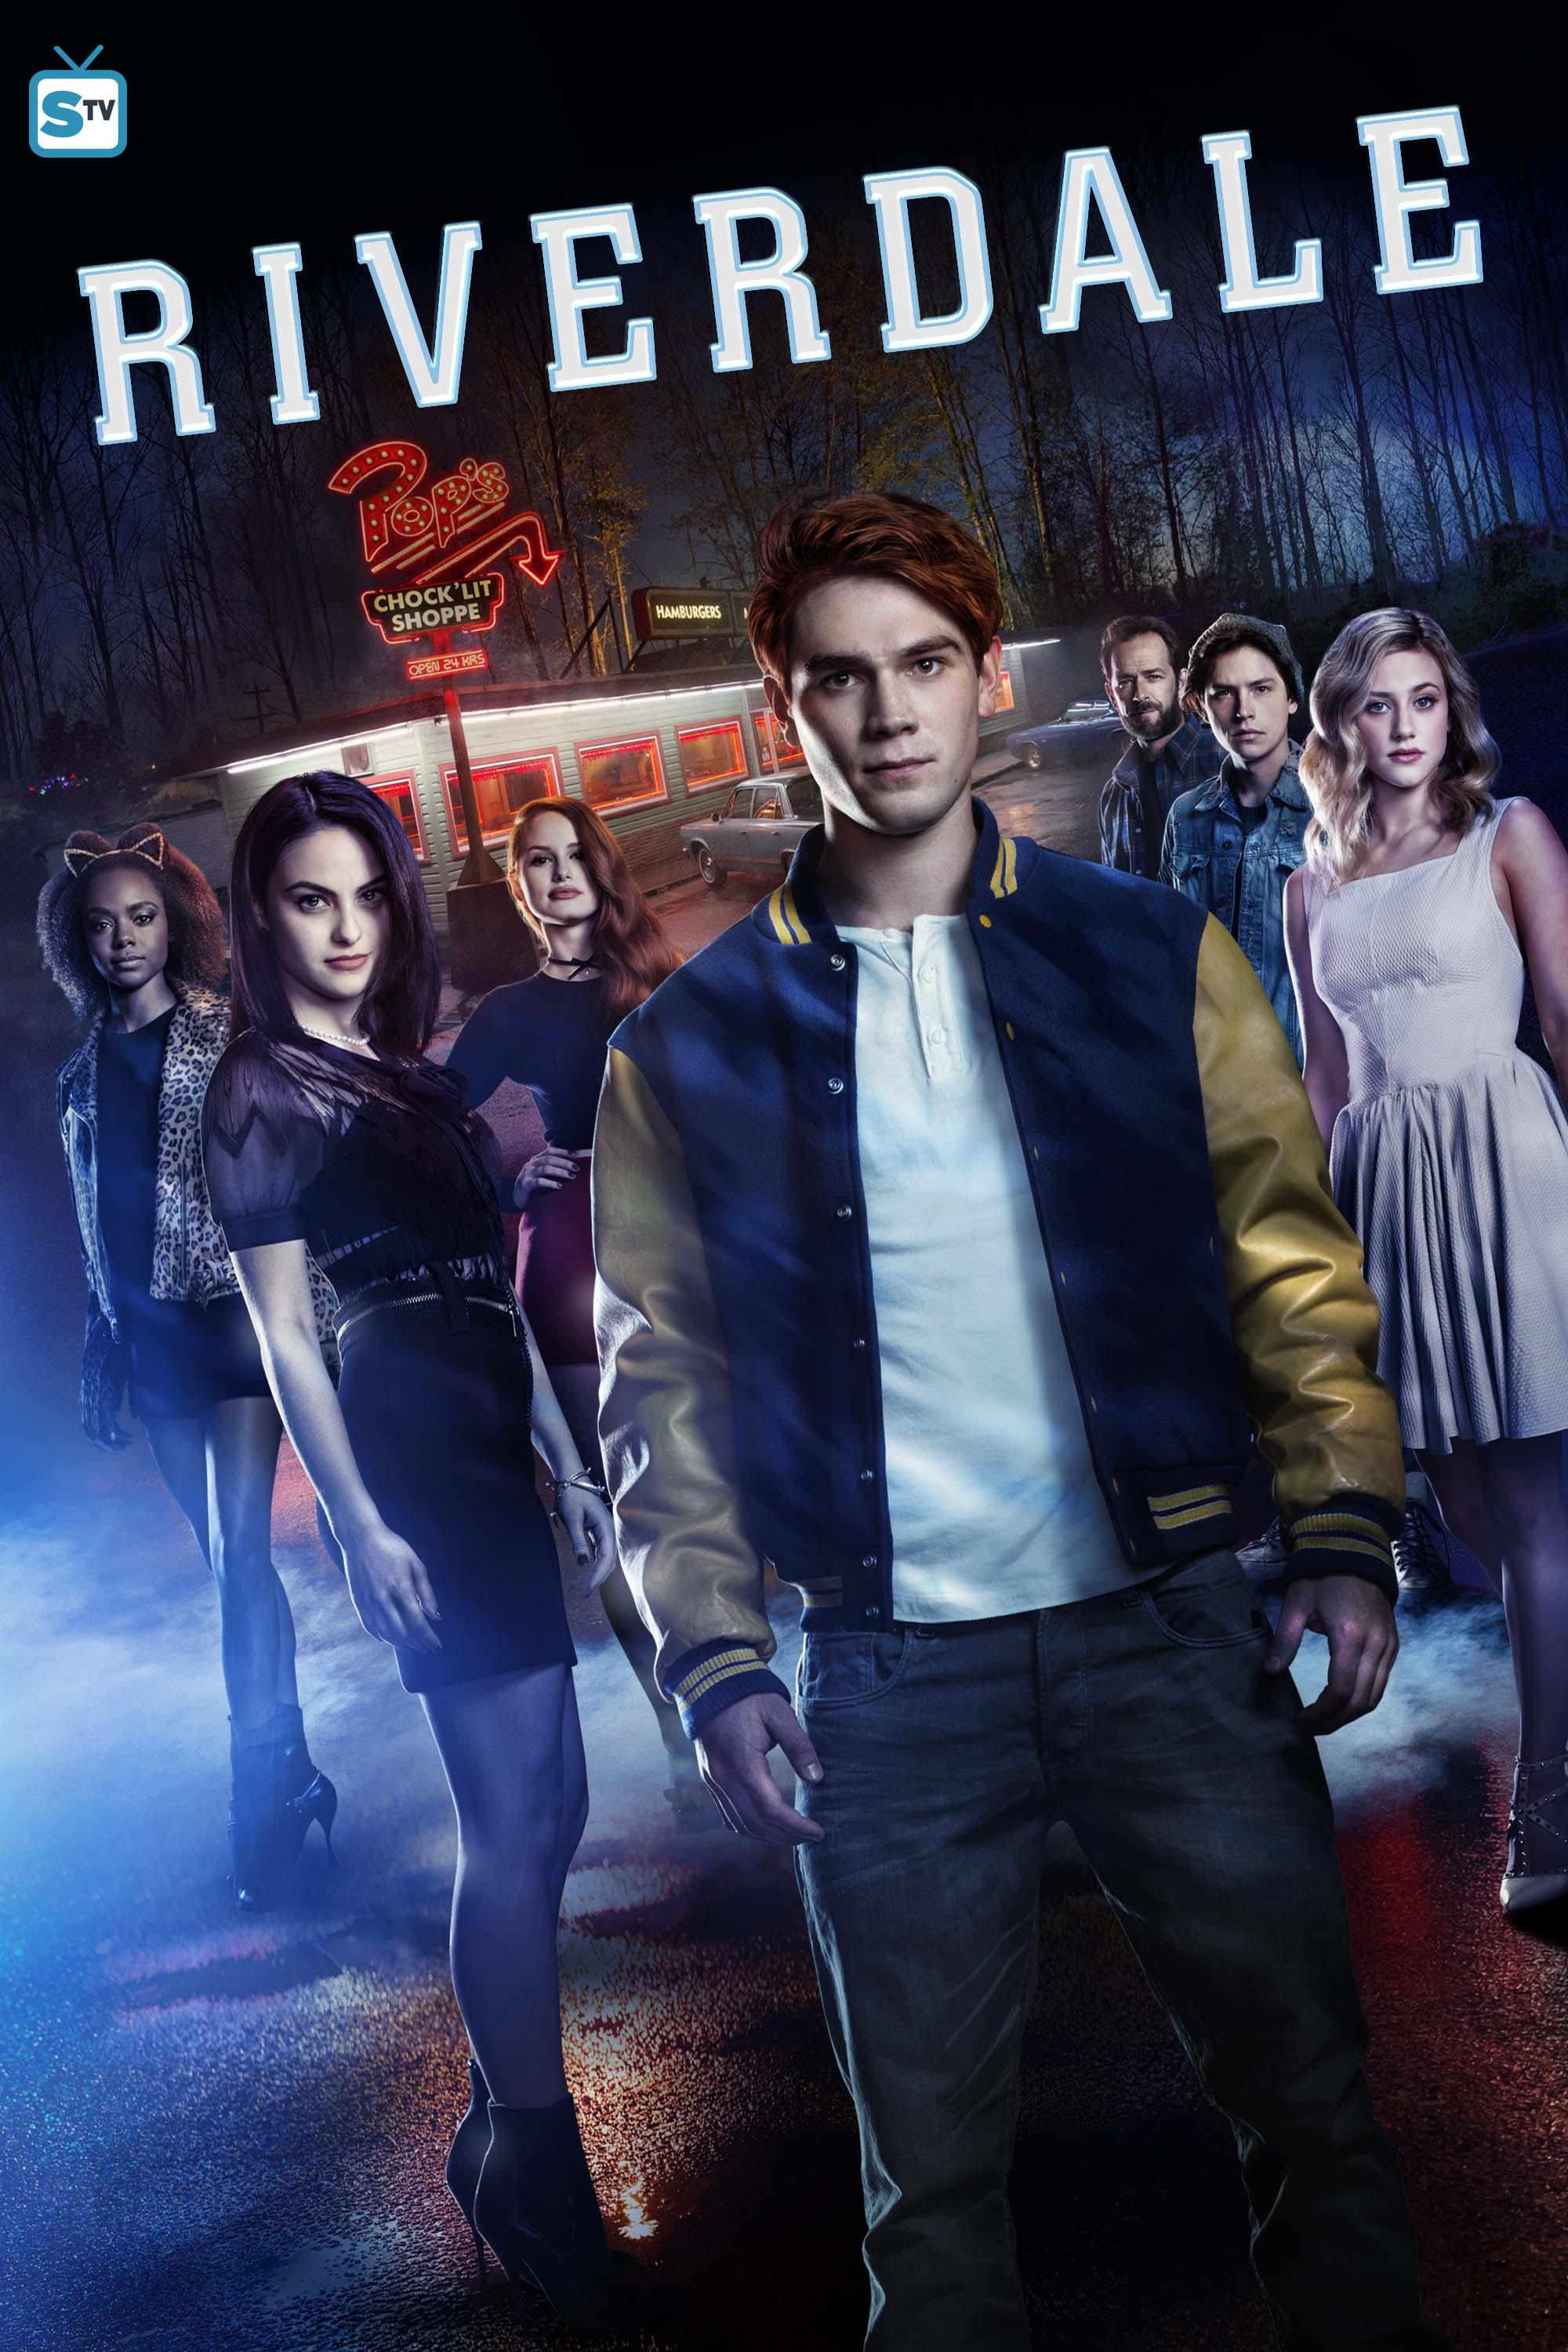 Riverdale-Poster-riverdale-2017-tv-series-40164994-2000-3000